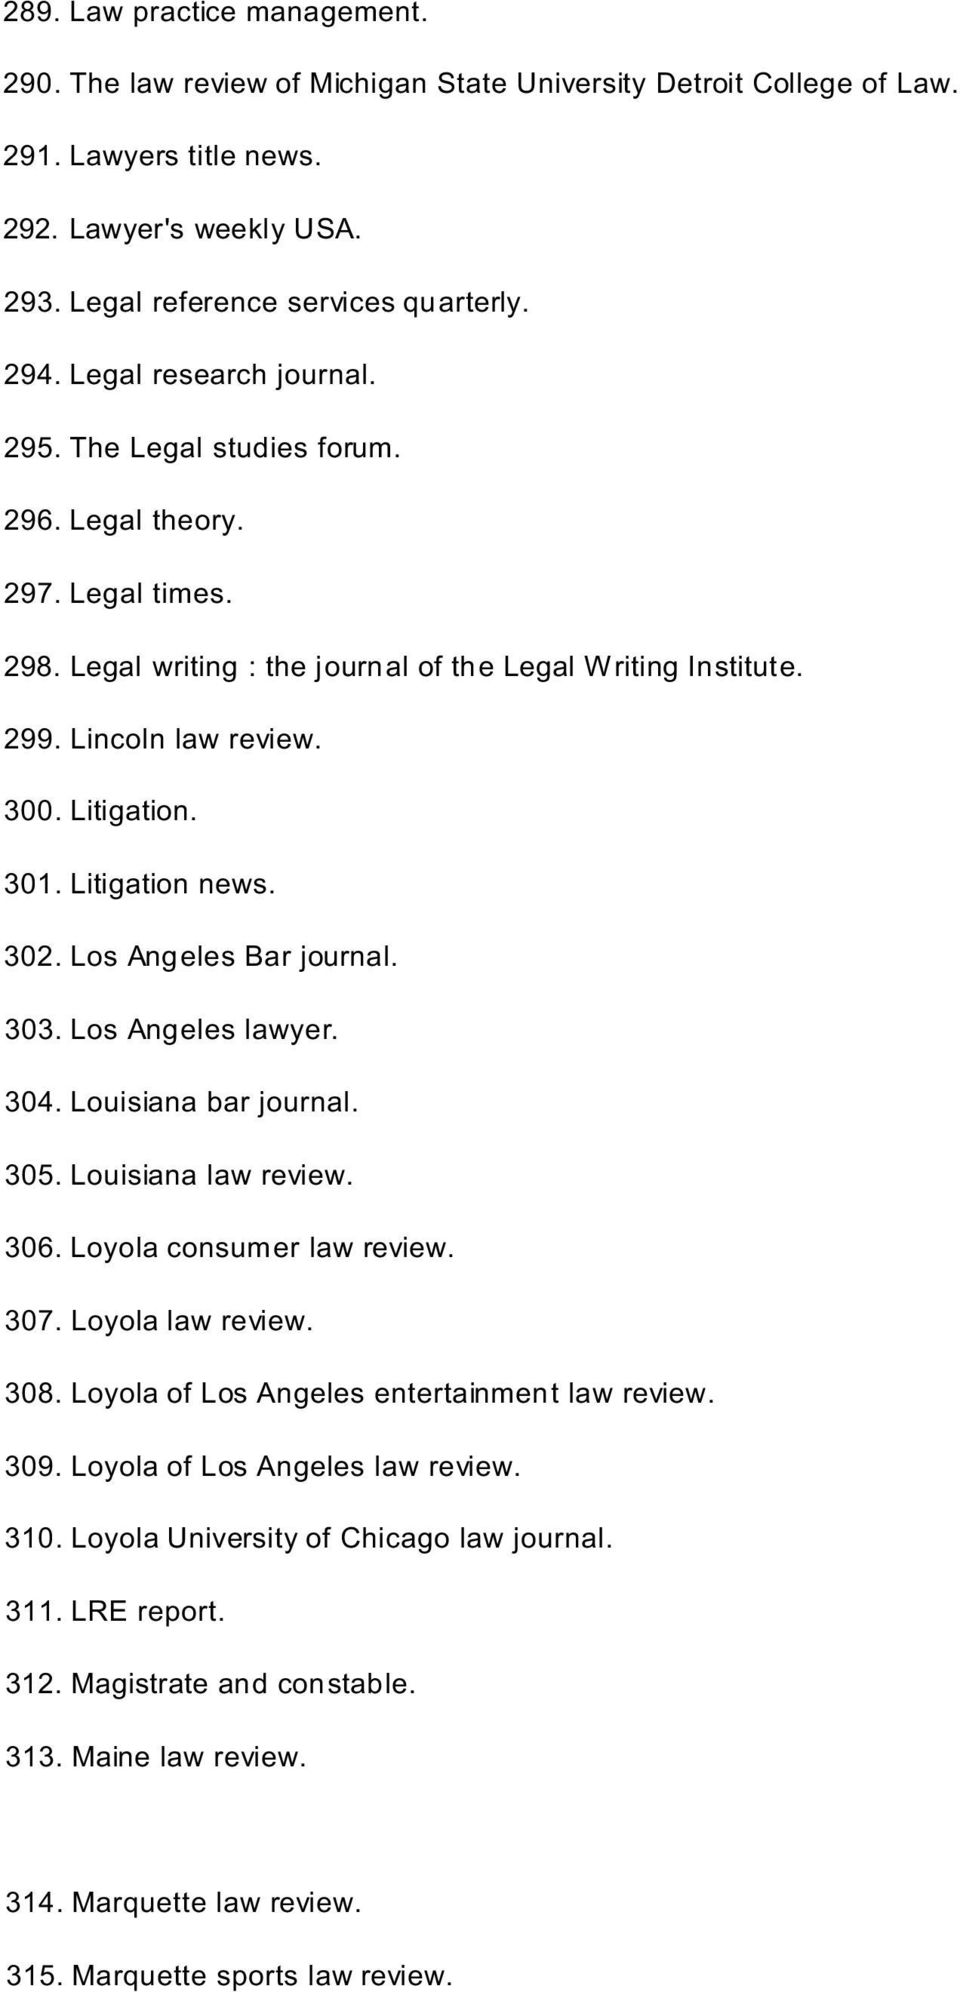 301. Litigation news. 302. Los Angeles Bar journal. 303. Los Angeles lawyer. 304. Louisiana bar journal. 305. Louisiana law review. 306. Loyola consumer law review. 307. Loyola law review. 308.